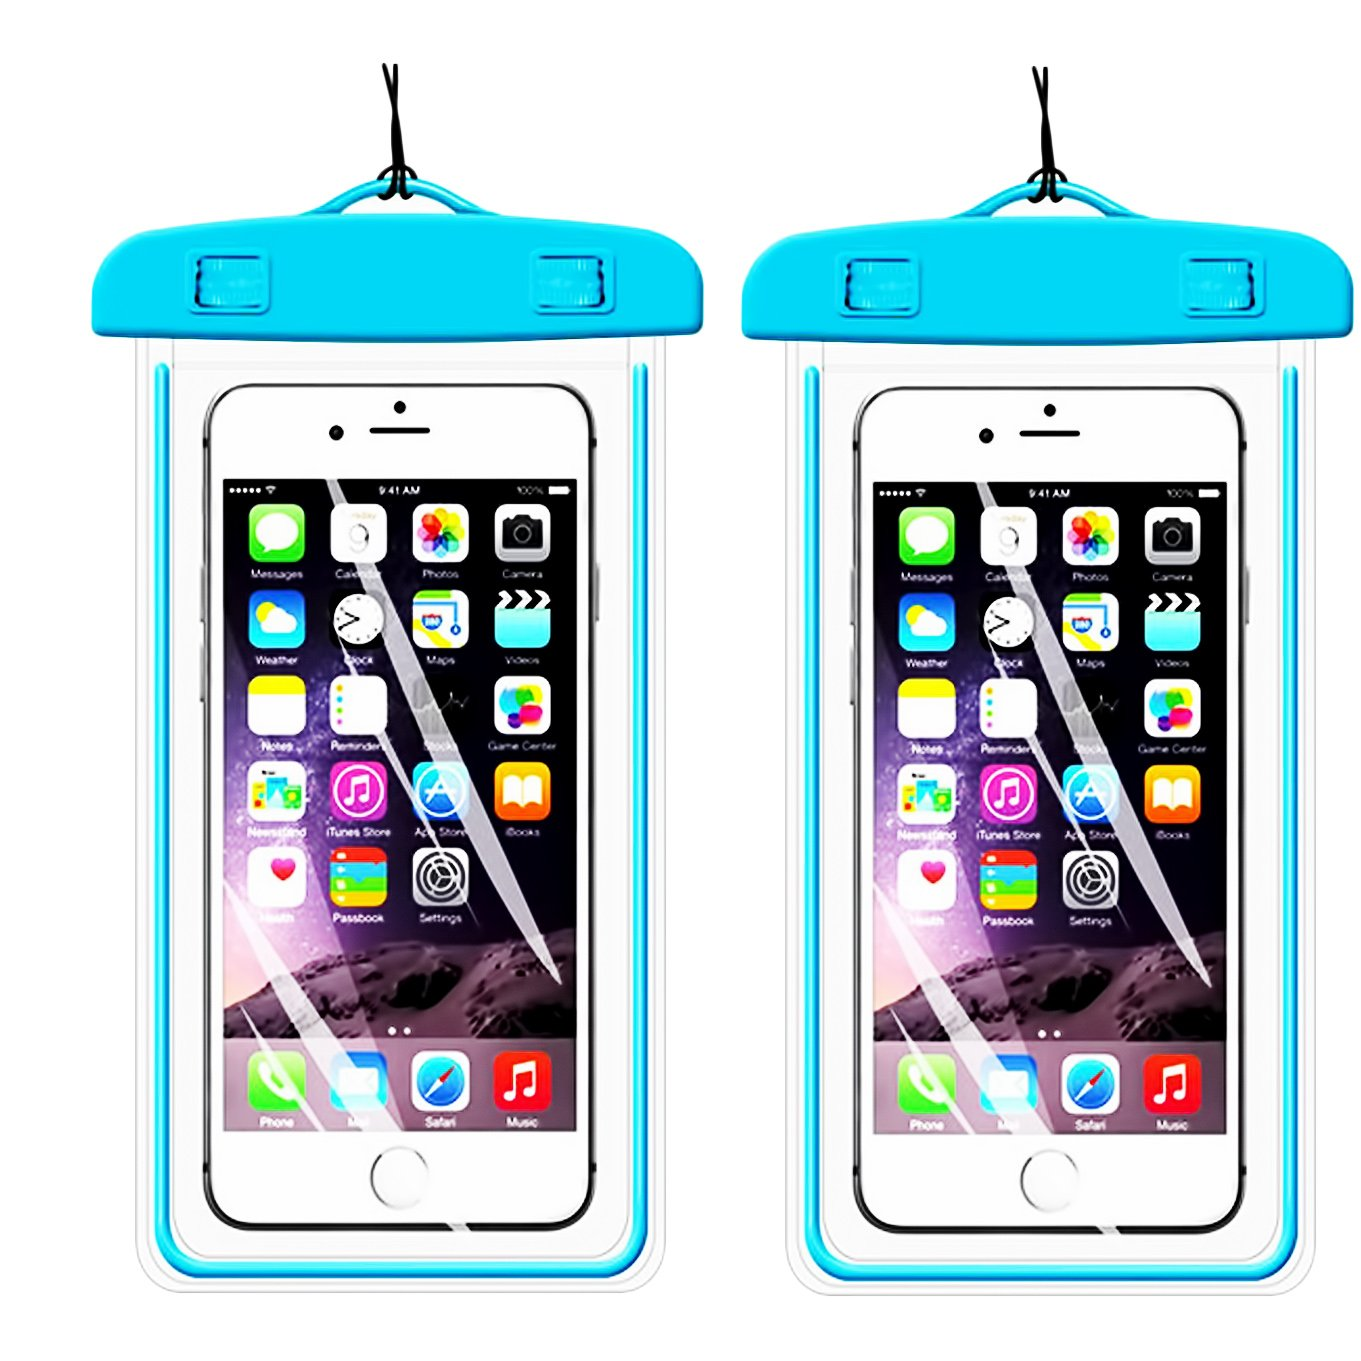 Amazon.com: 1 Pack Azul Funda impermeable universal, casehq ...